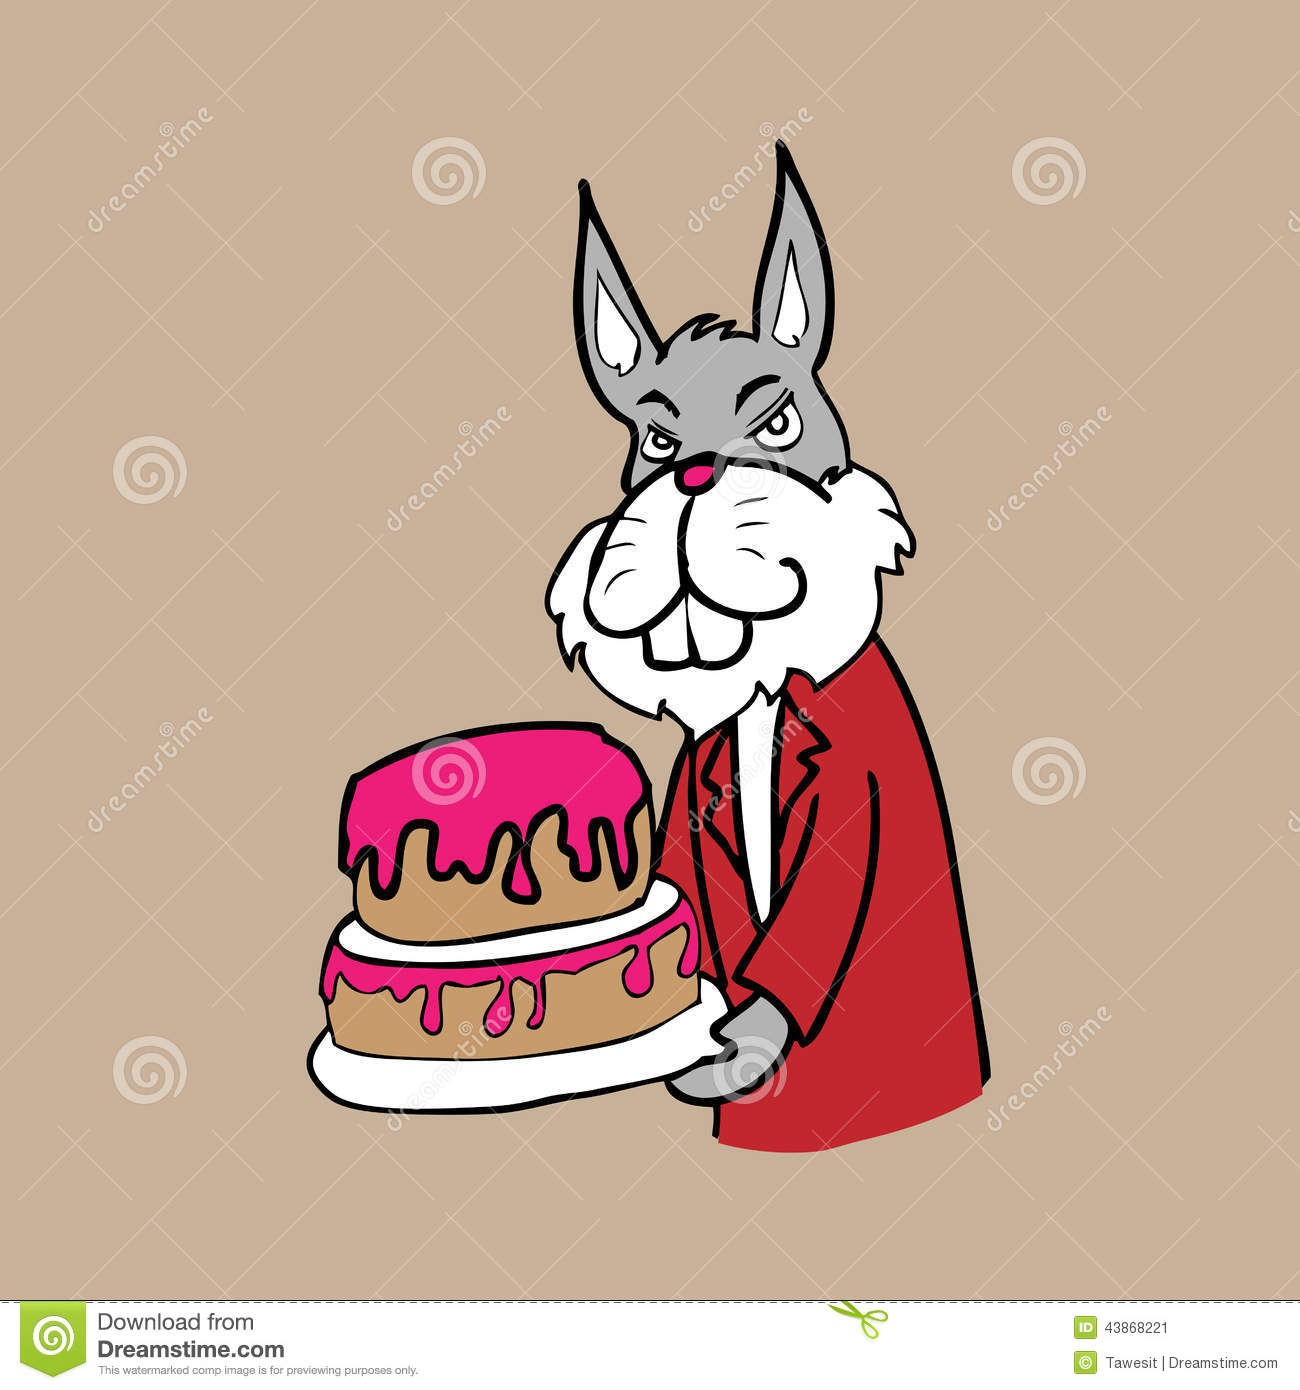 Cartoon Character Design For Cake : Rabbit and cake stock illustration image